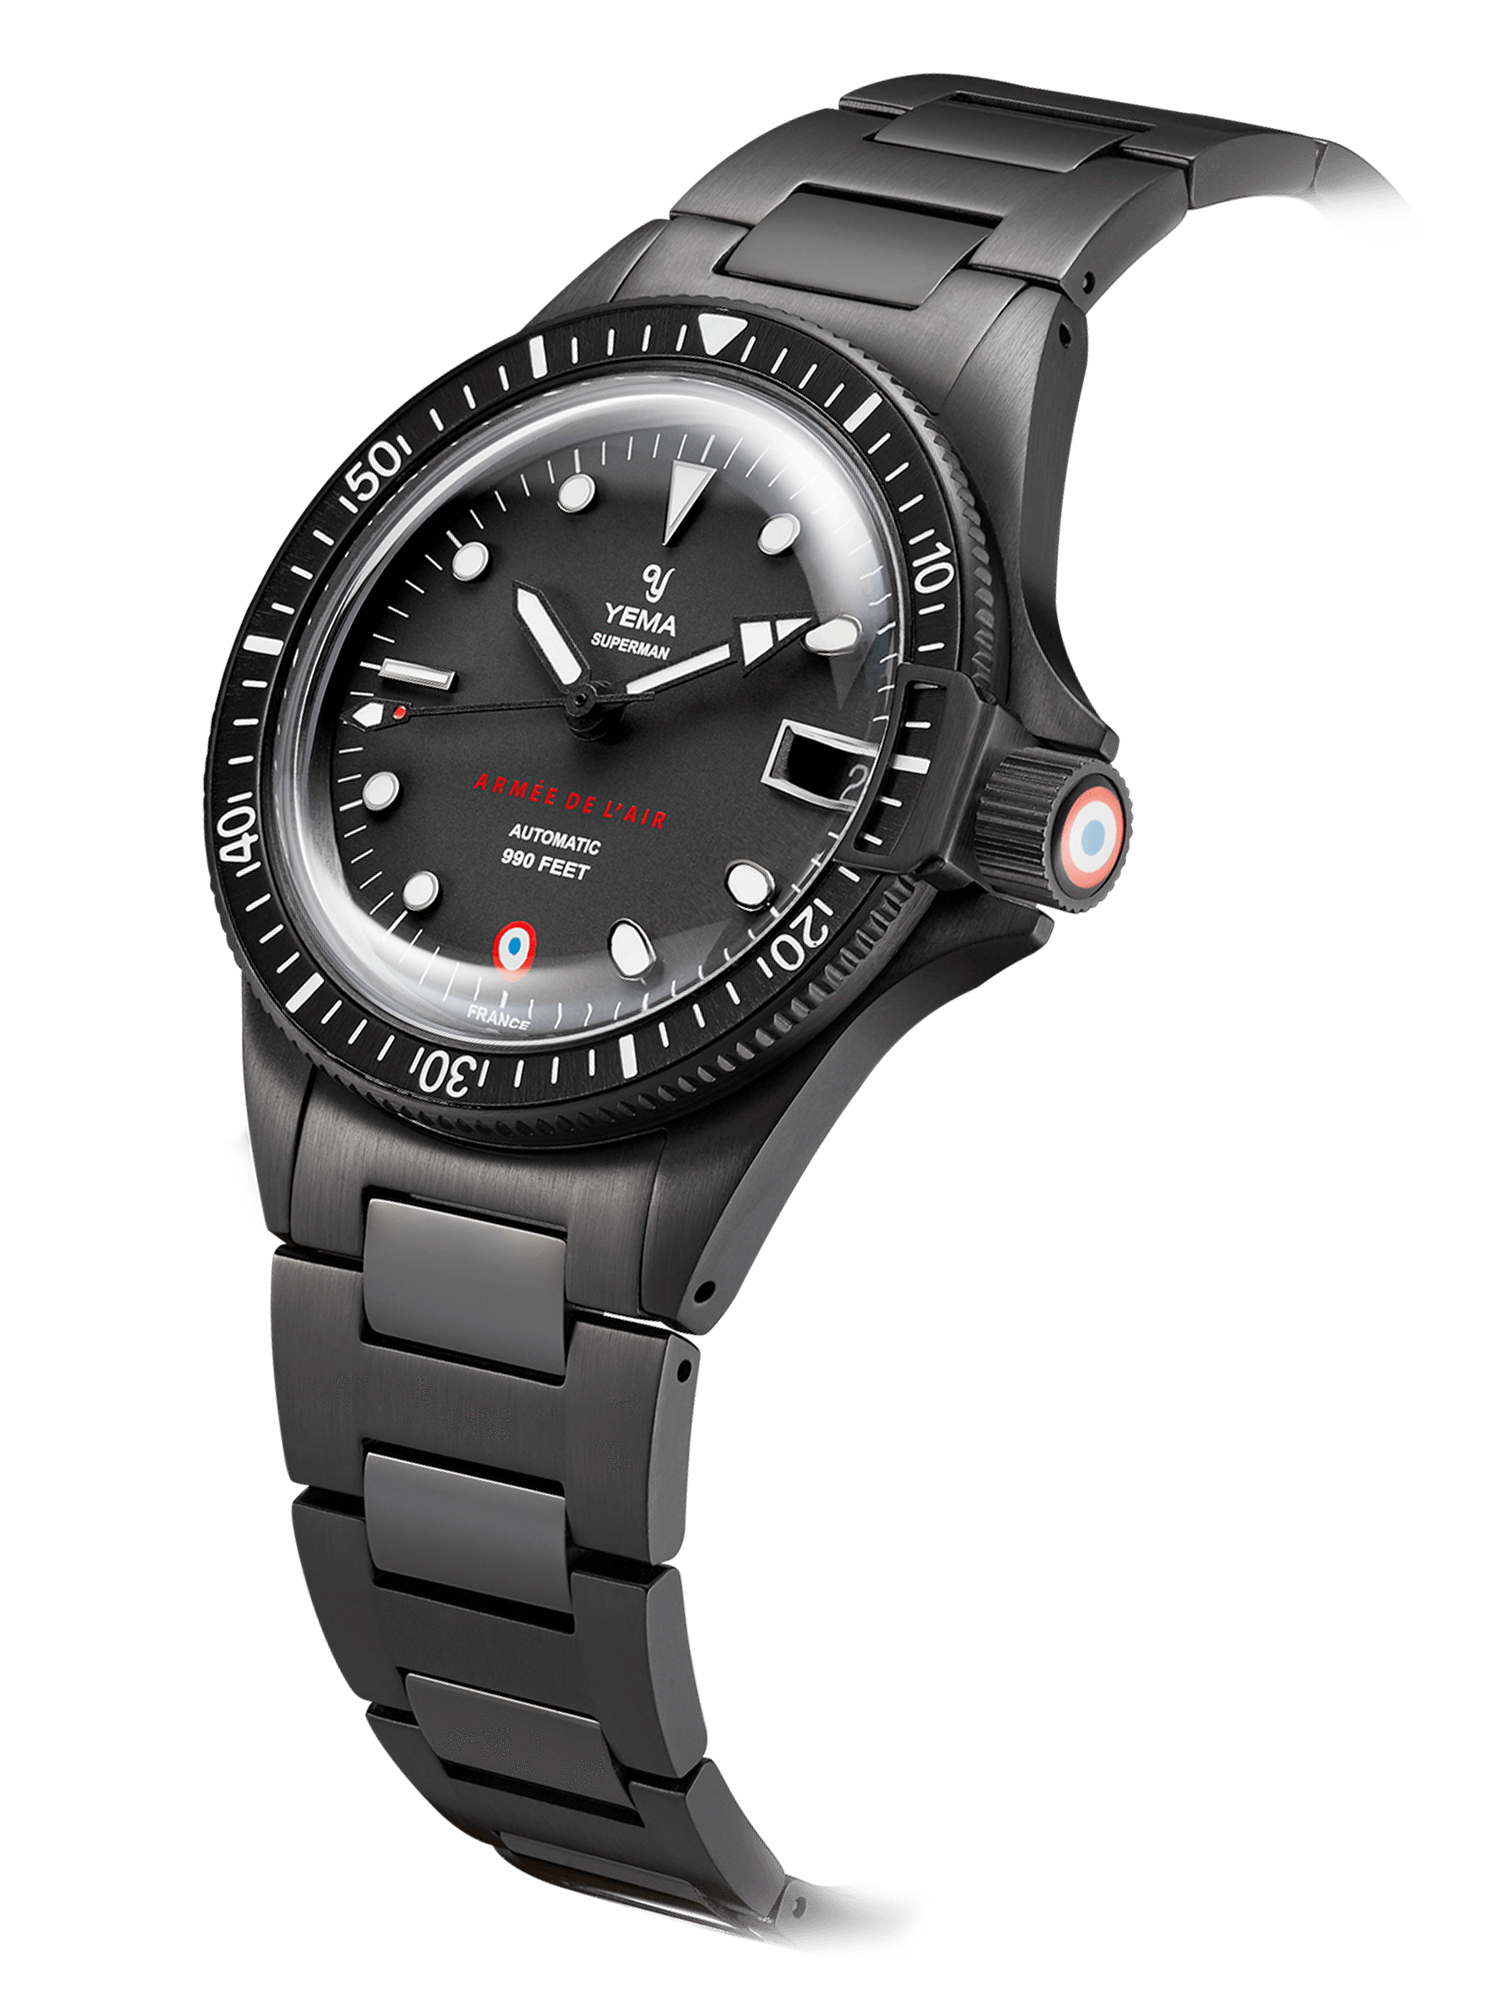 YEMA Superman French Air Force Black Limited Edition,Steel bezel with black aluminium insert.